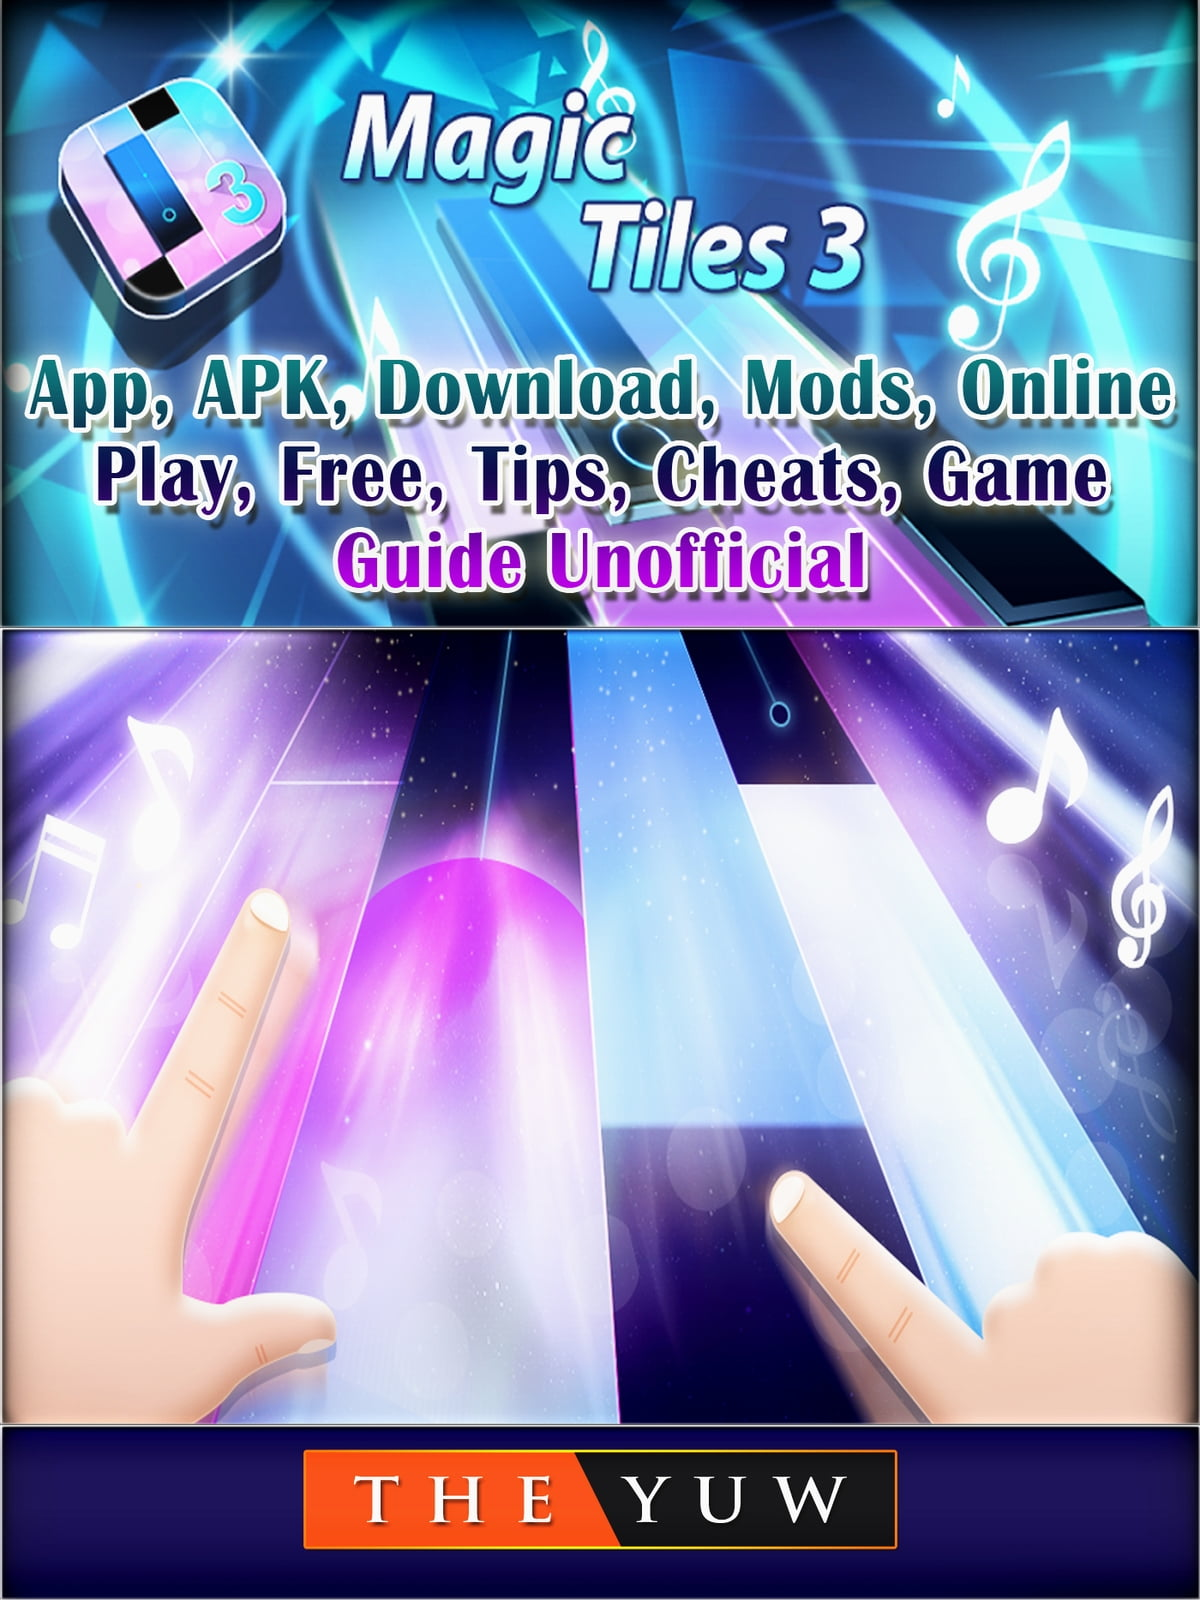 Magic Tiles 3,App, APK, Download, Mods, Online, Play, Free, Tips, Cheats,  Game Guide Unofficial ebook by The Yuw - Rakuten Kobo